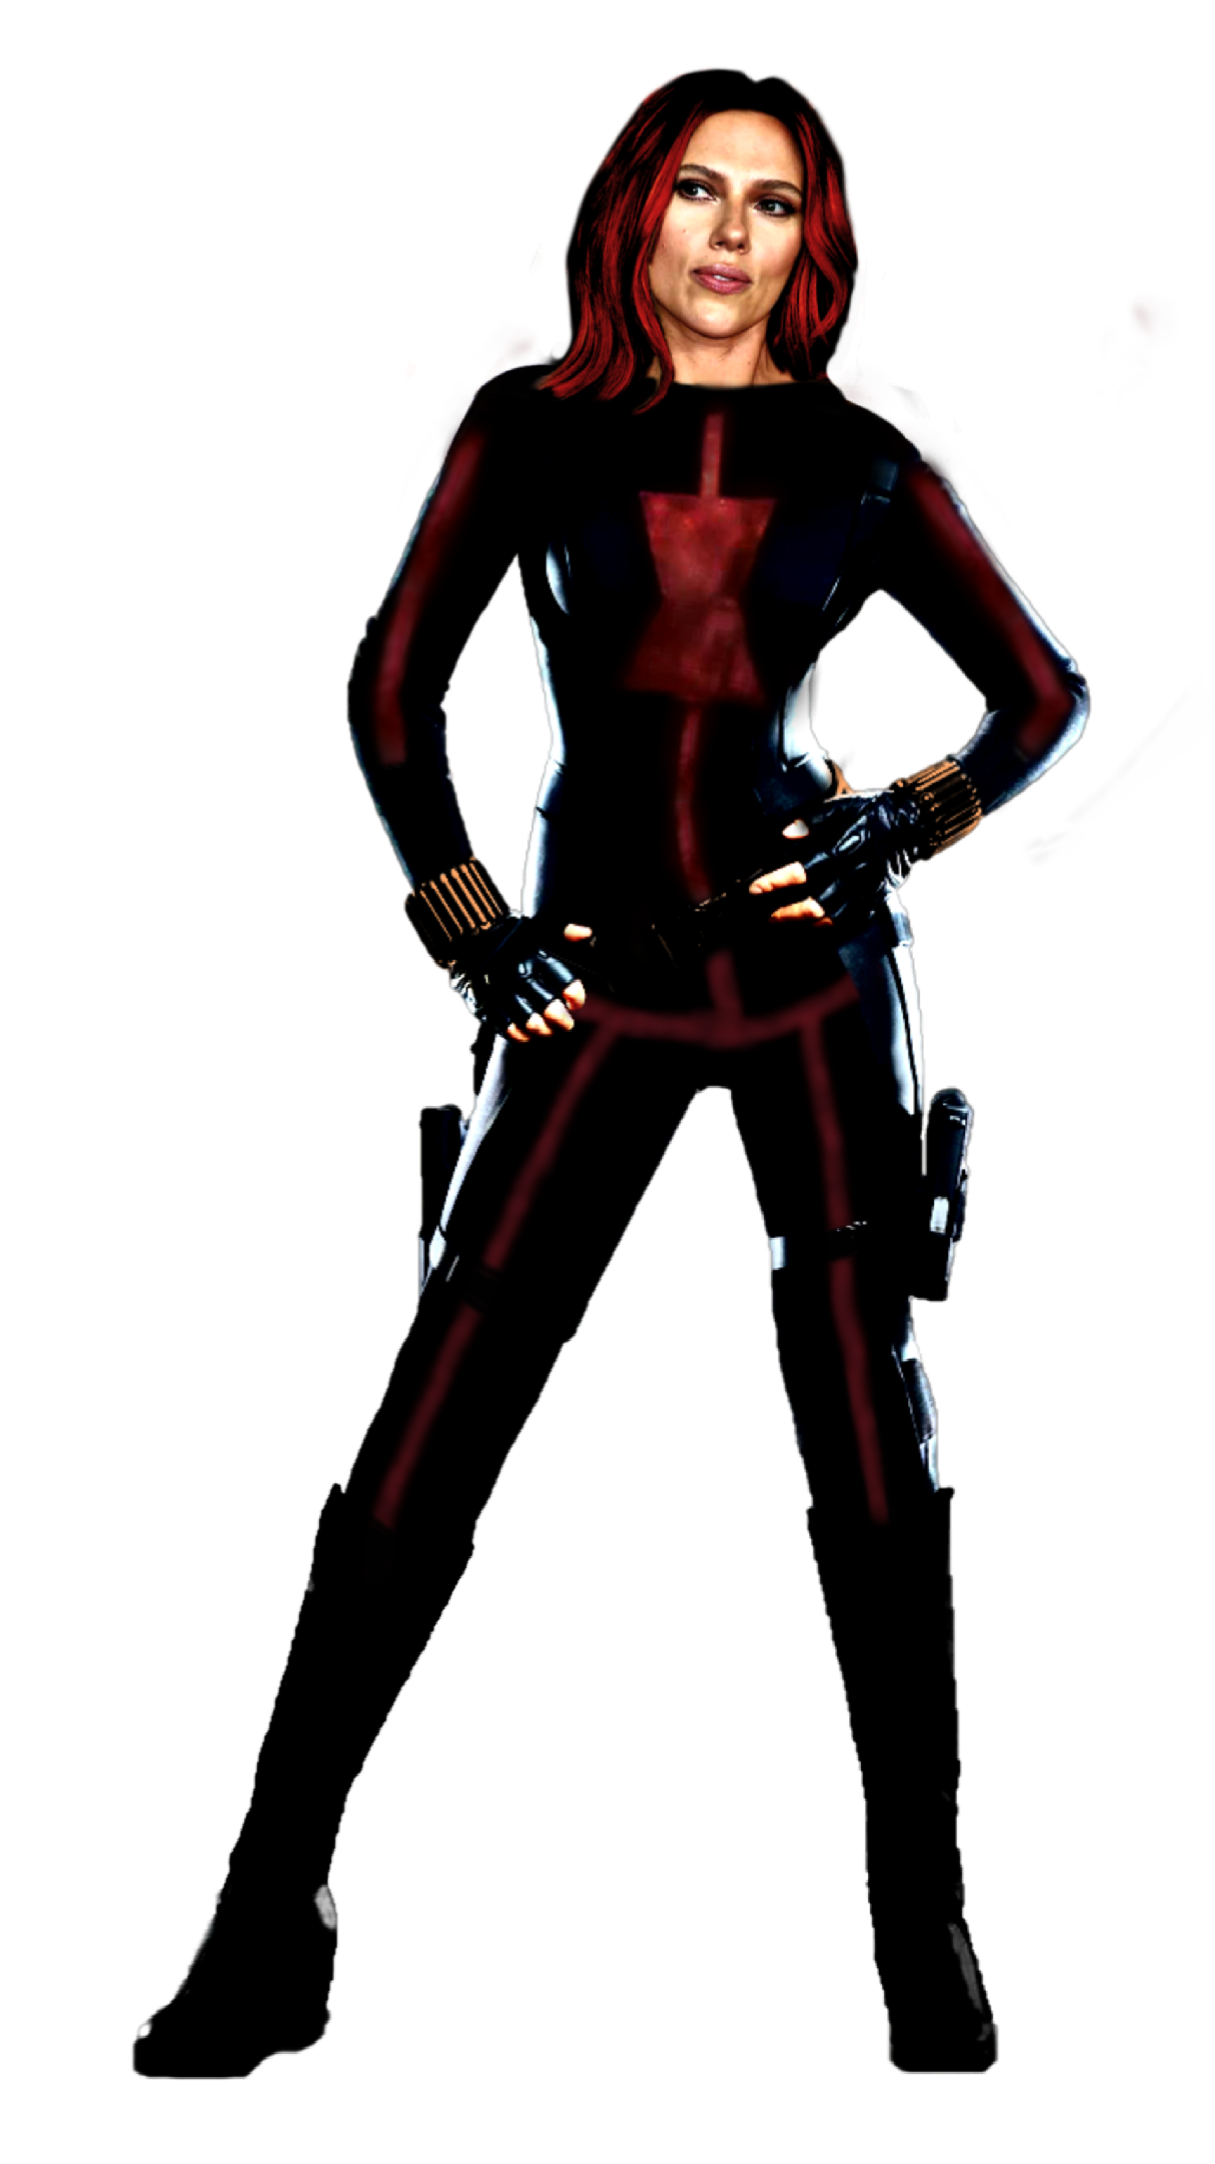 Black Widow Png 2020 Solo Movie Fan Made By Gojinerd1999